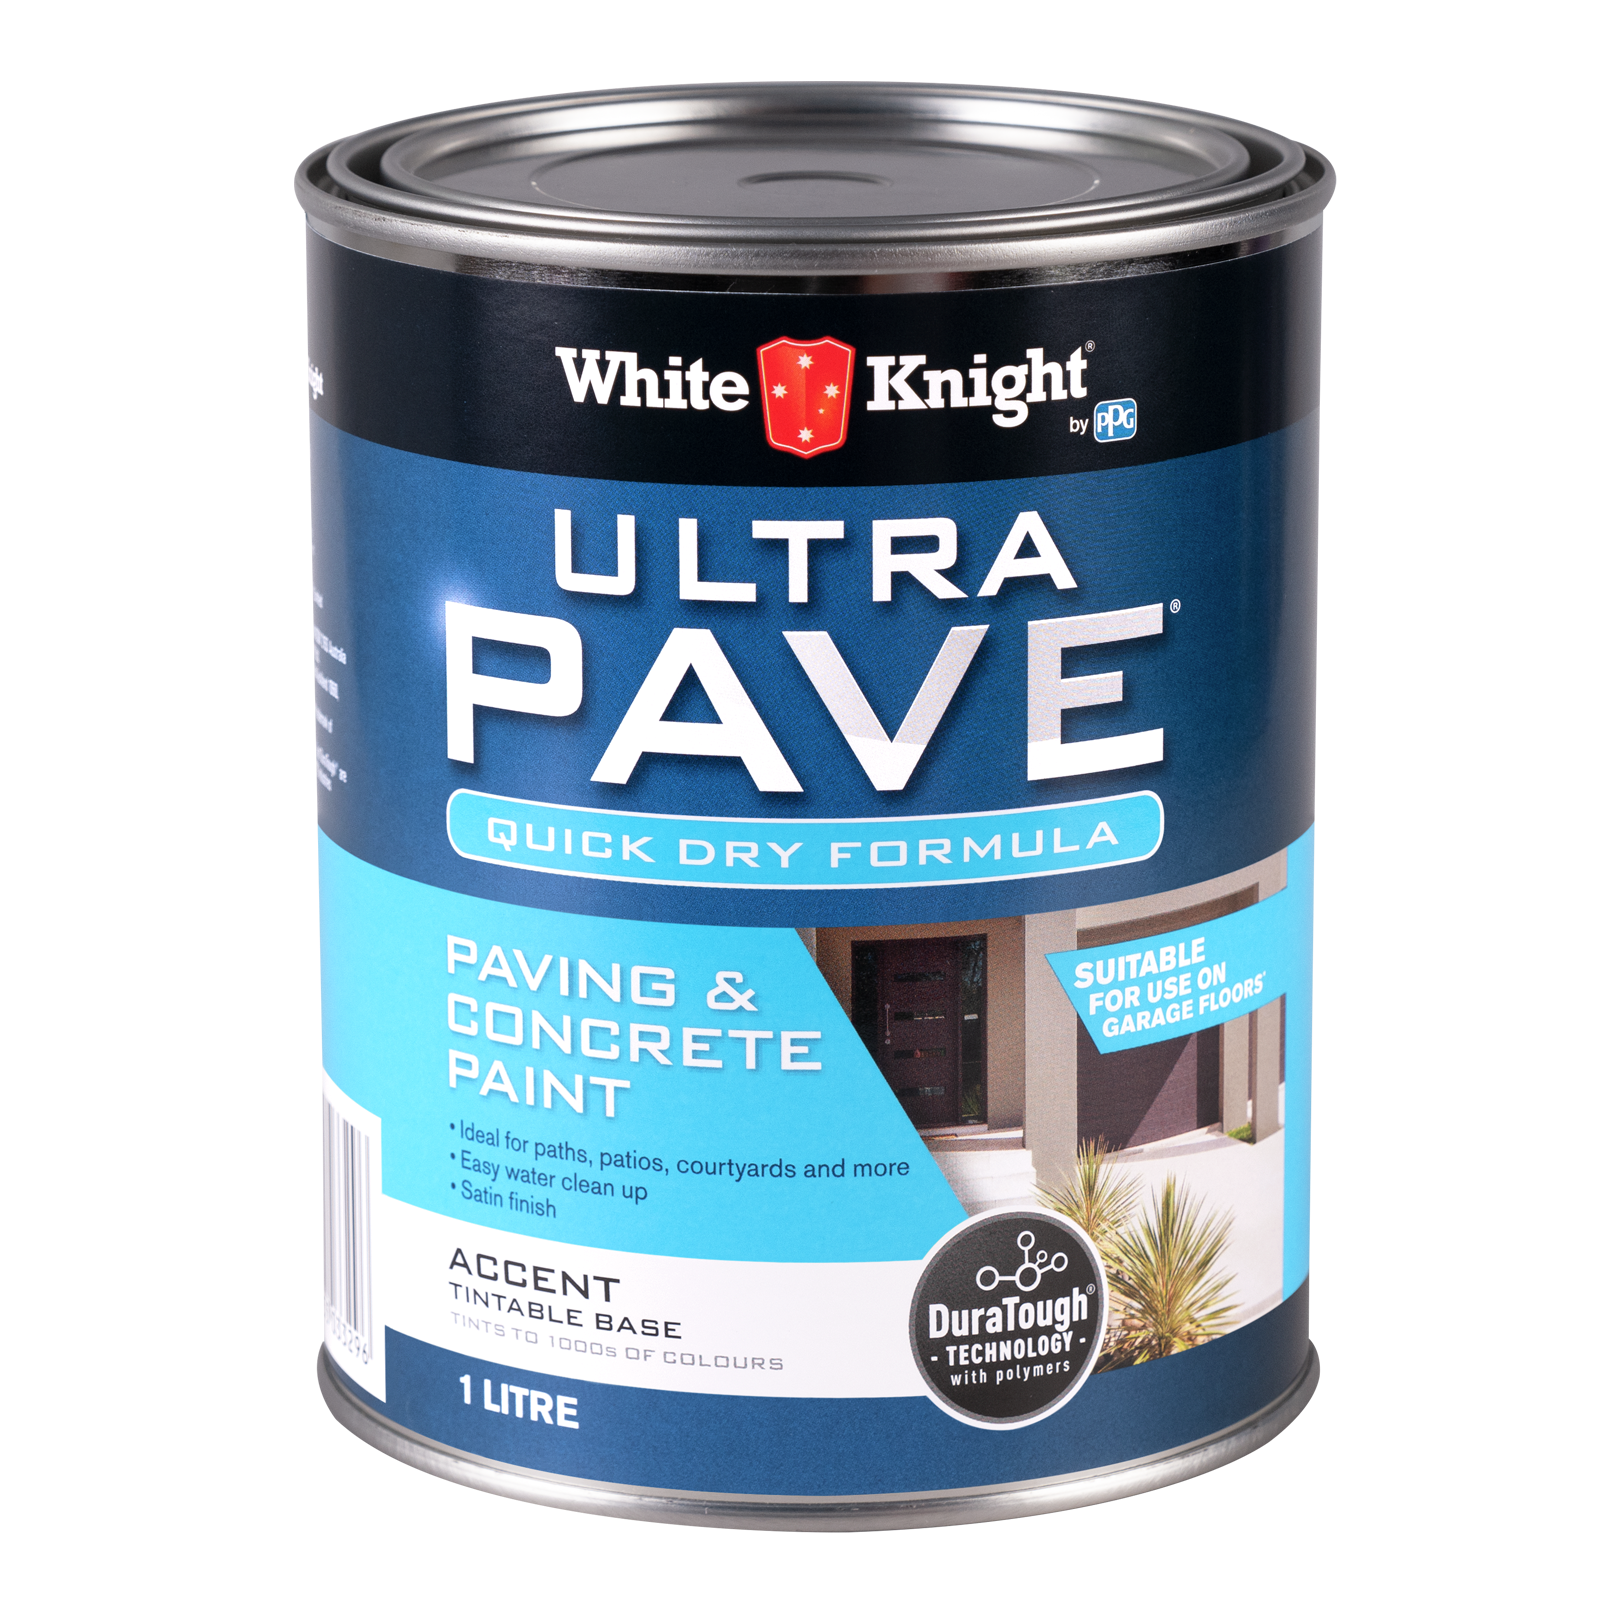 White Knight Accent Ultra Pave Quick Dry Paint - 1L